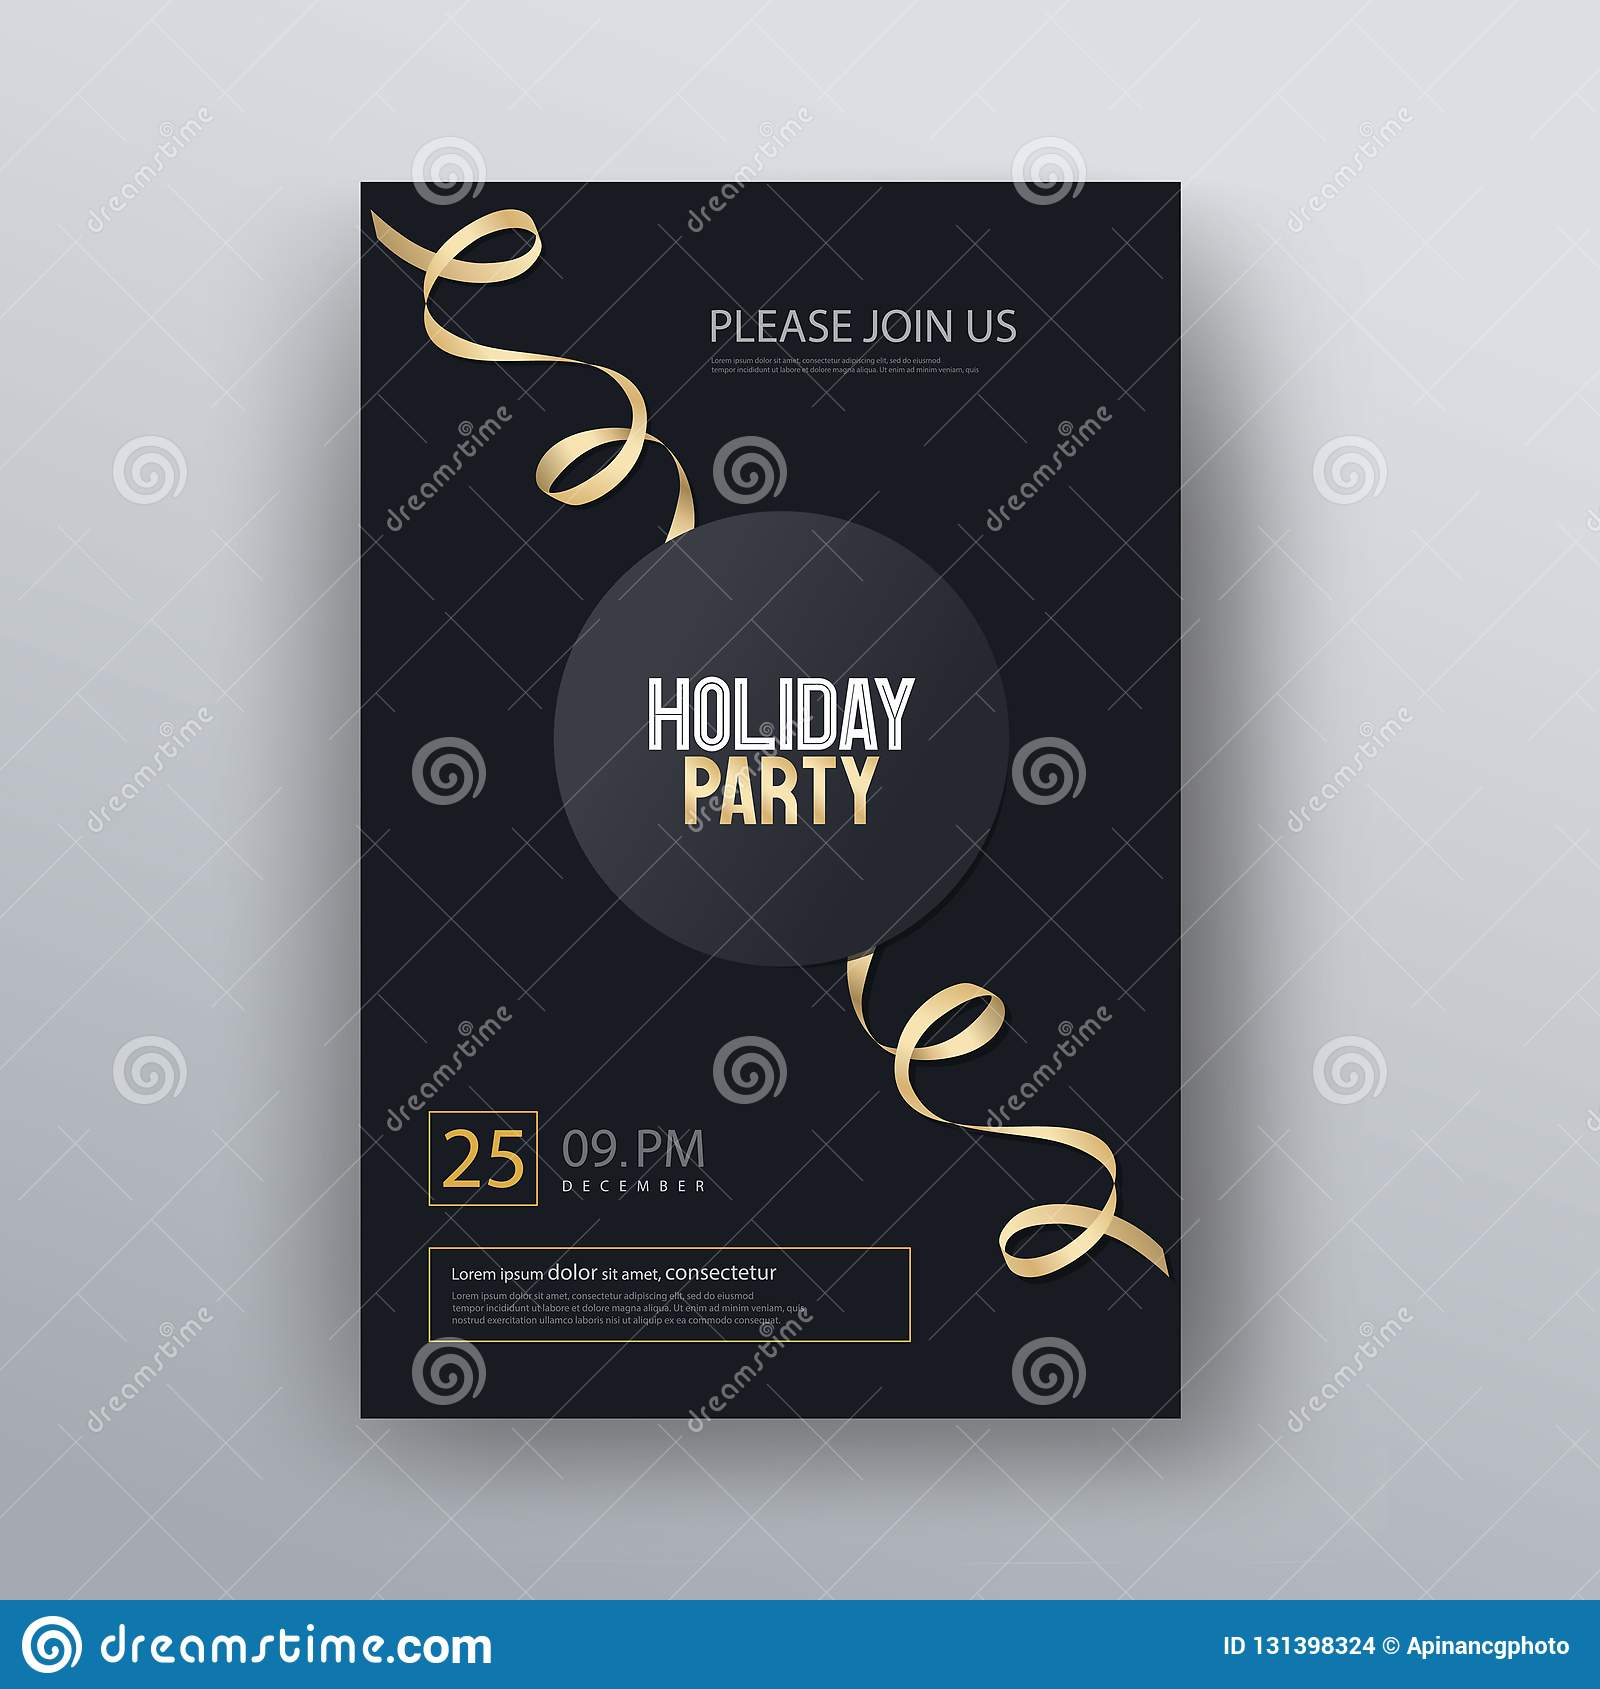 vector illustration design for holiday party and happy new year party invitation flyer